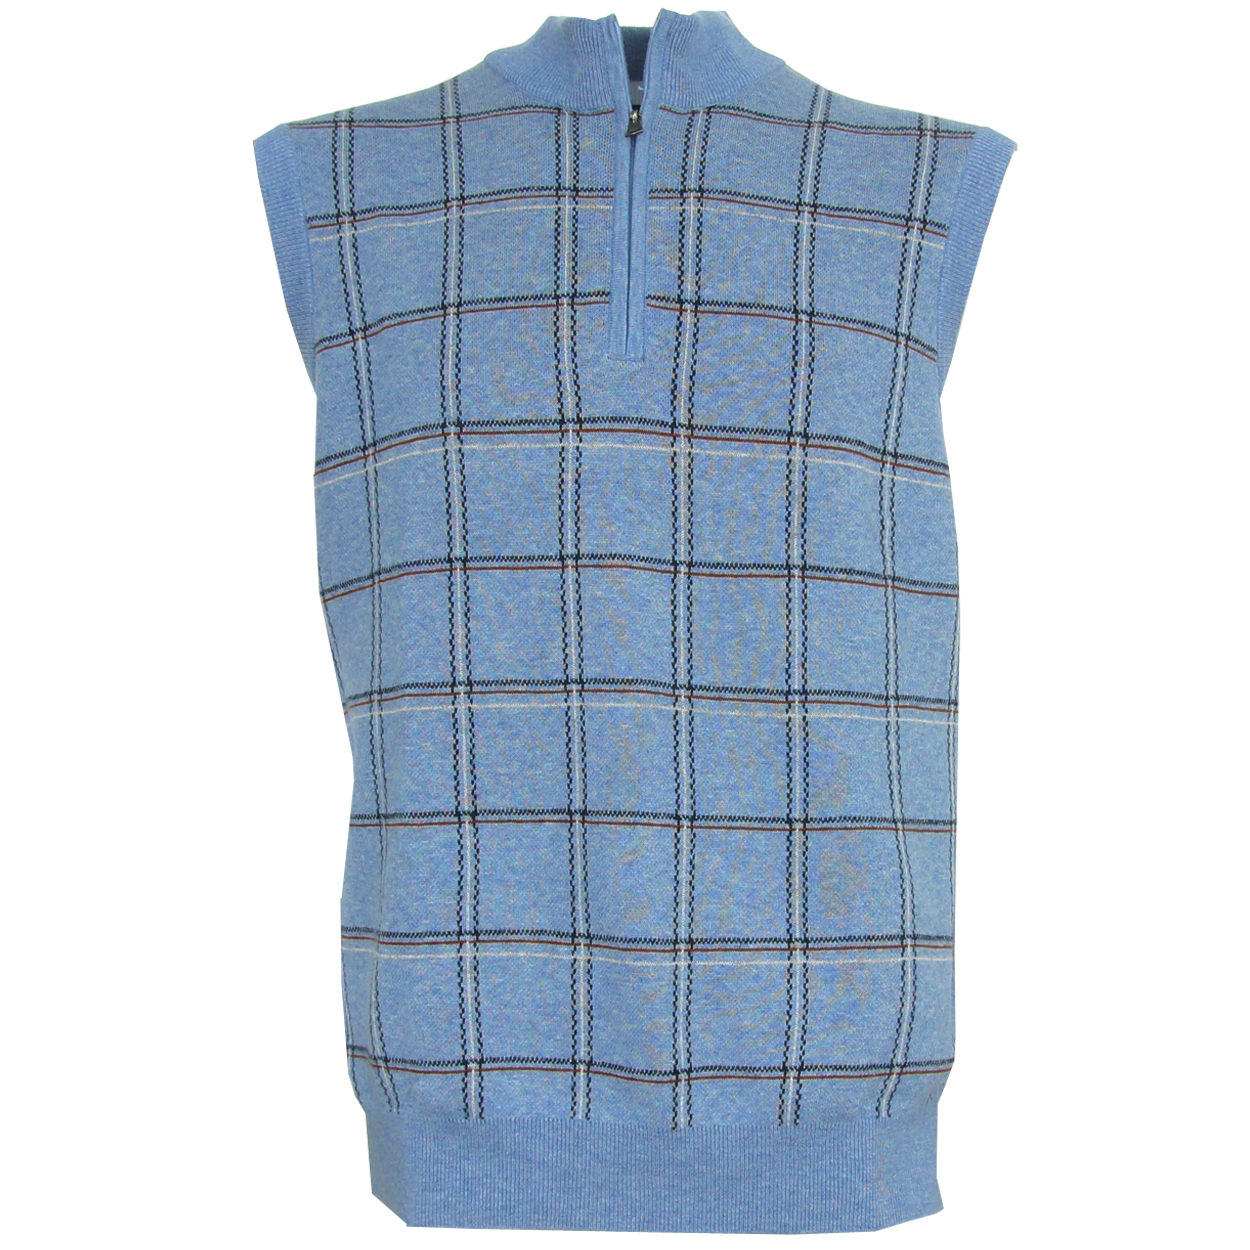 The Greg Norman Plaid 1/4-Zip Sweater Vest is the perfect accessory on cool days. Greg Norman achieved great success on tour and has carried that success off the golf course with his performance line of apparel. Soft comfortable garments that offer terrific freedom of movement~ versatility~ and styl